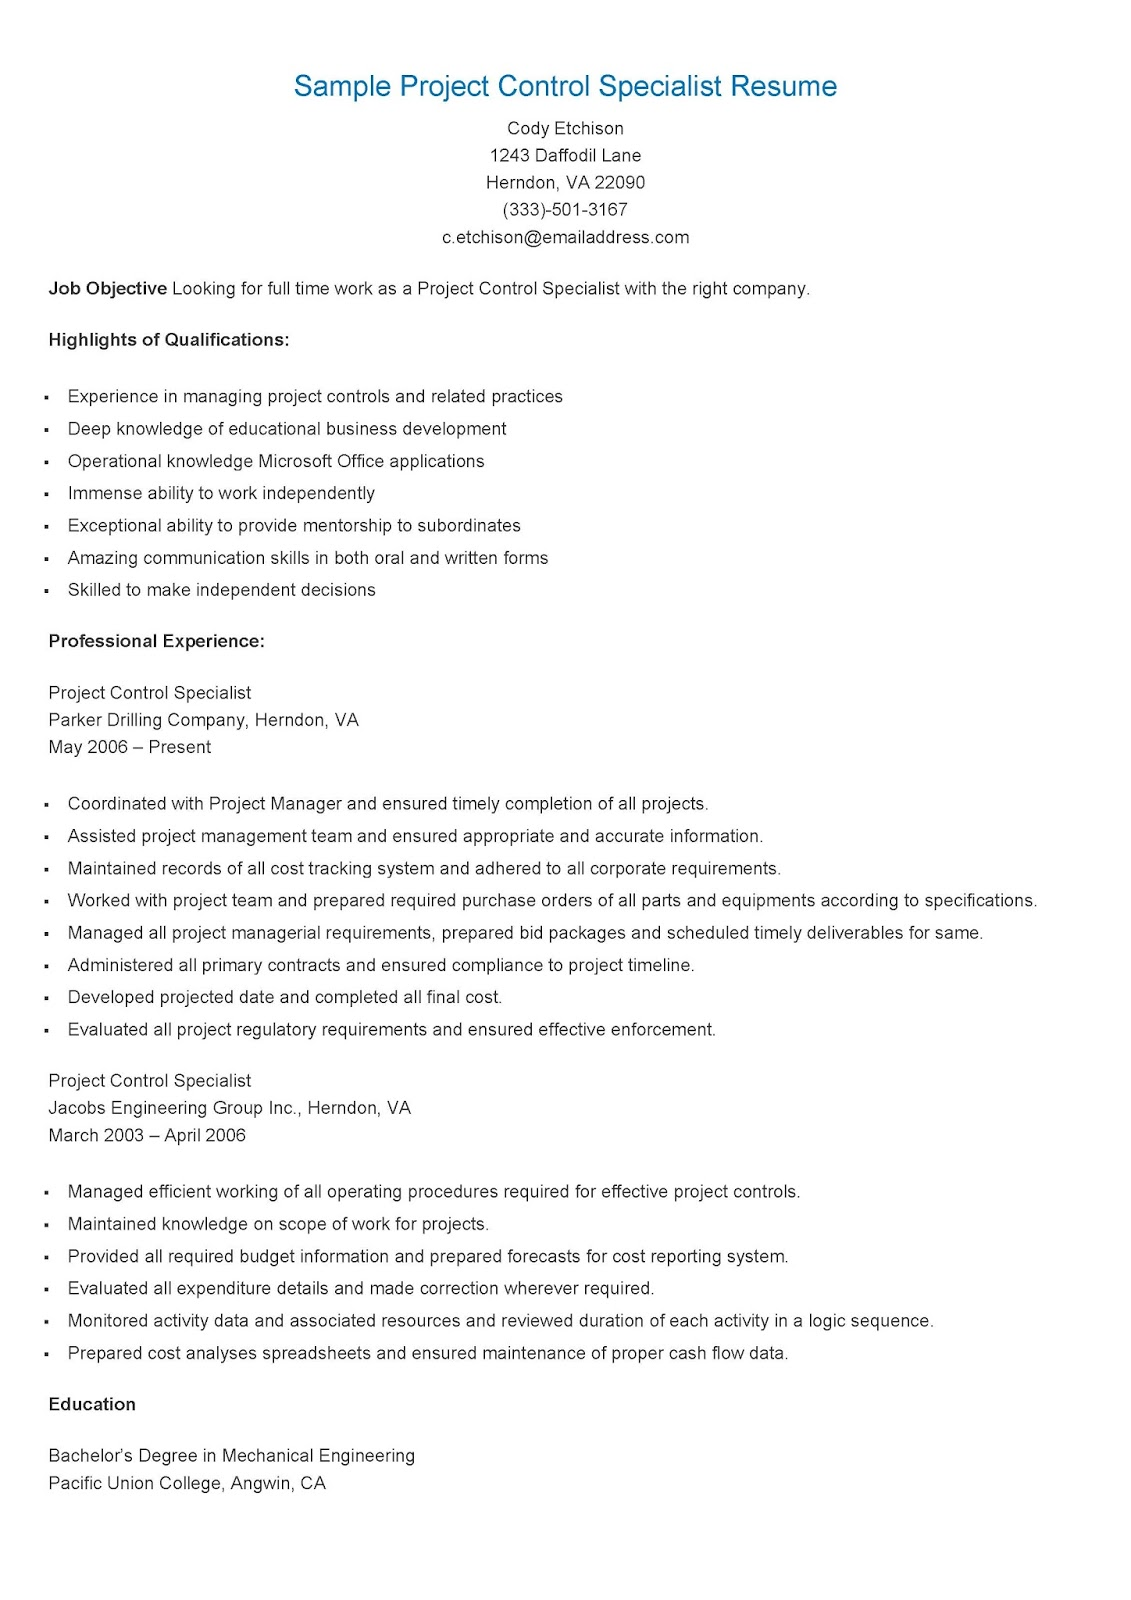 resume samples sample project control specialist resume